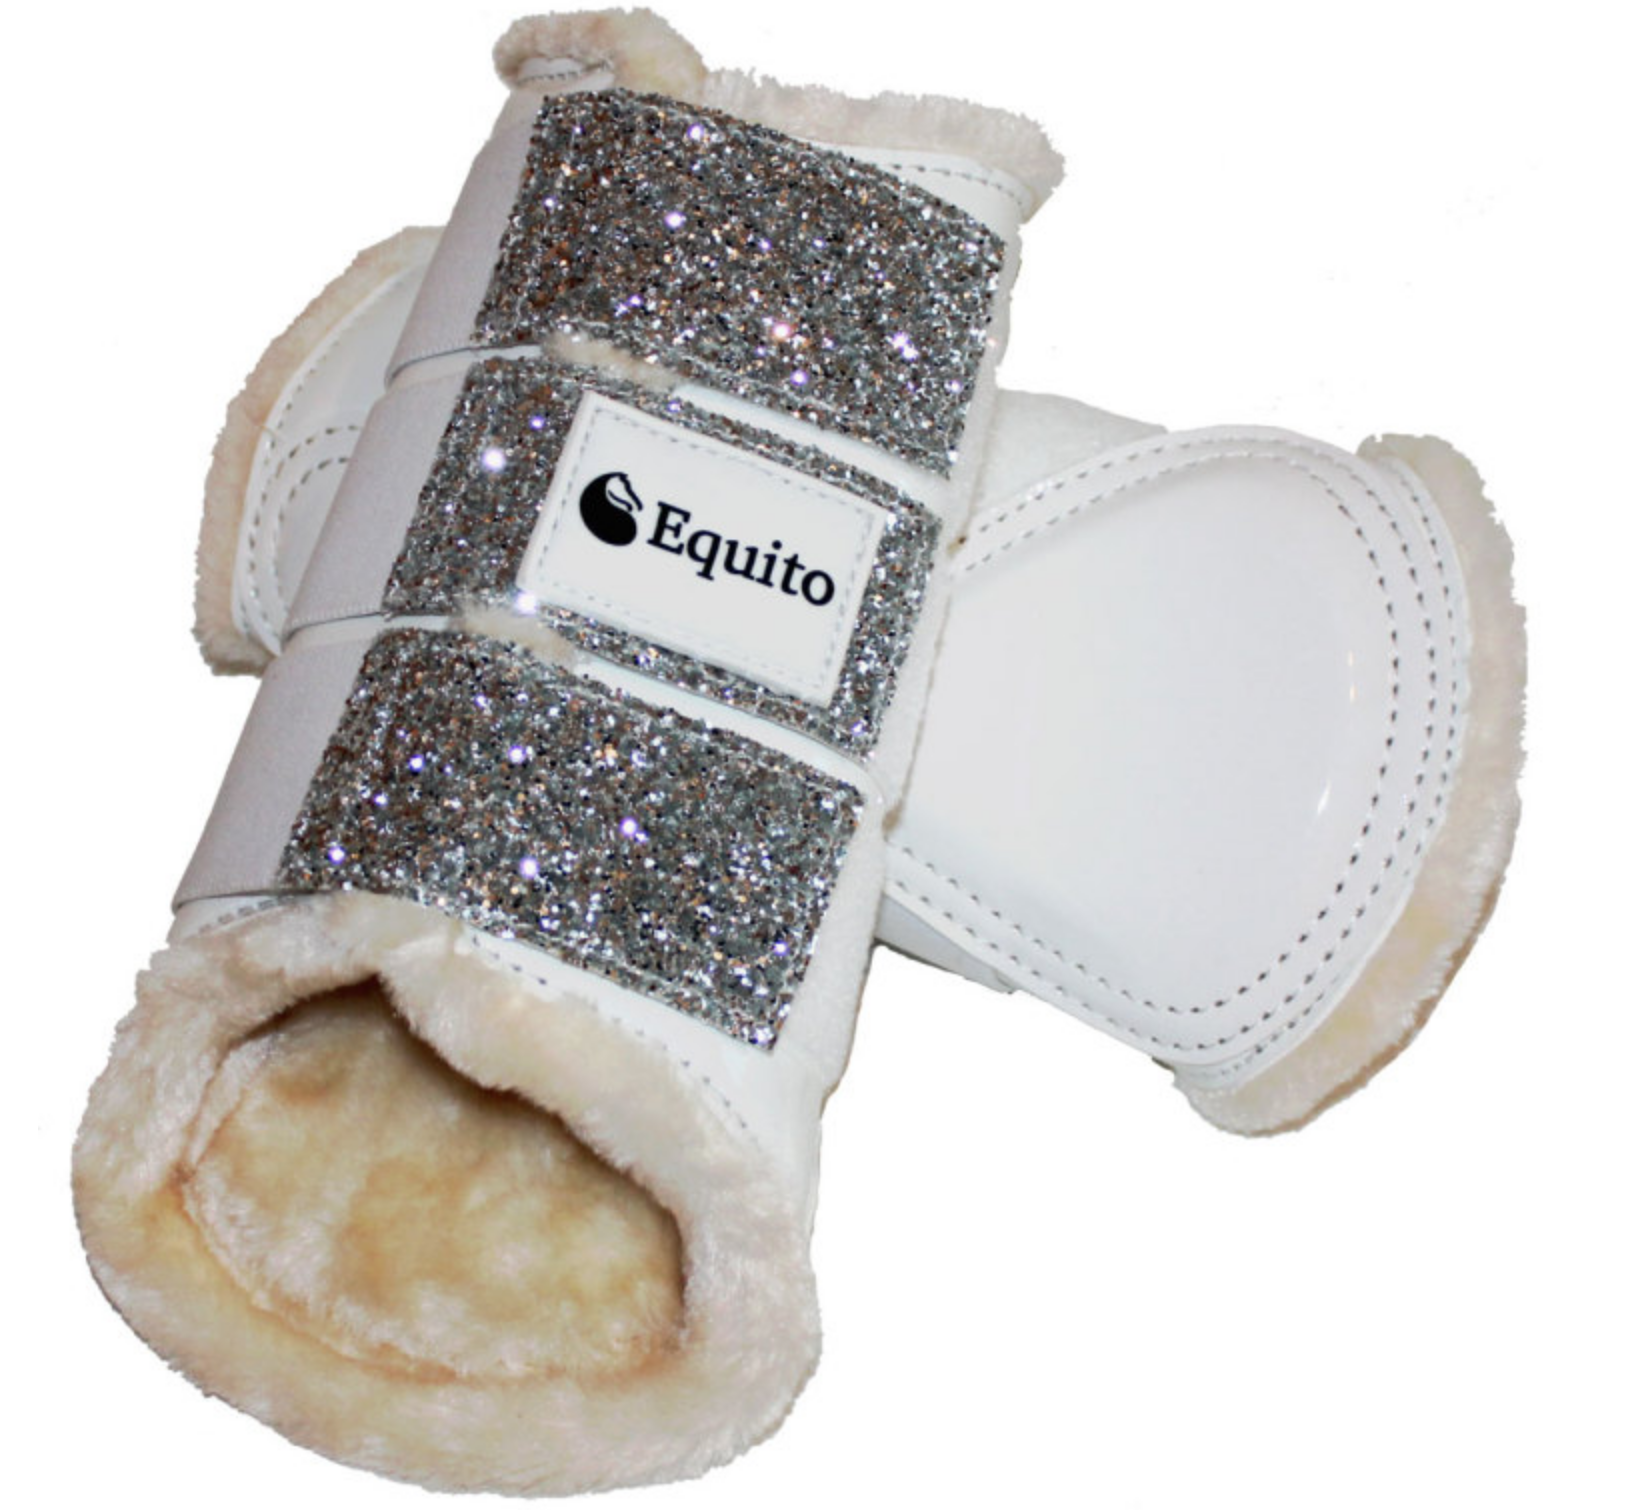 Equito – Protection glitter